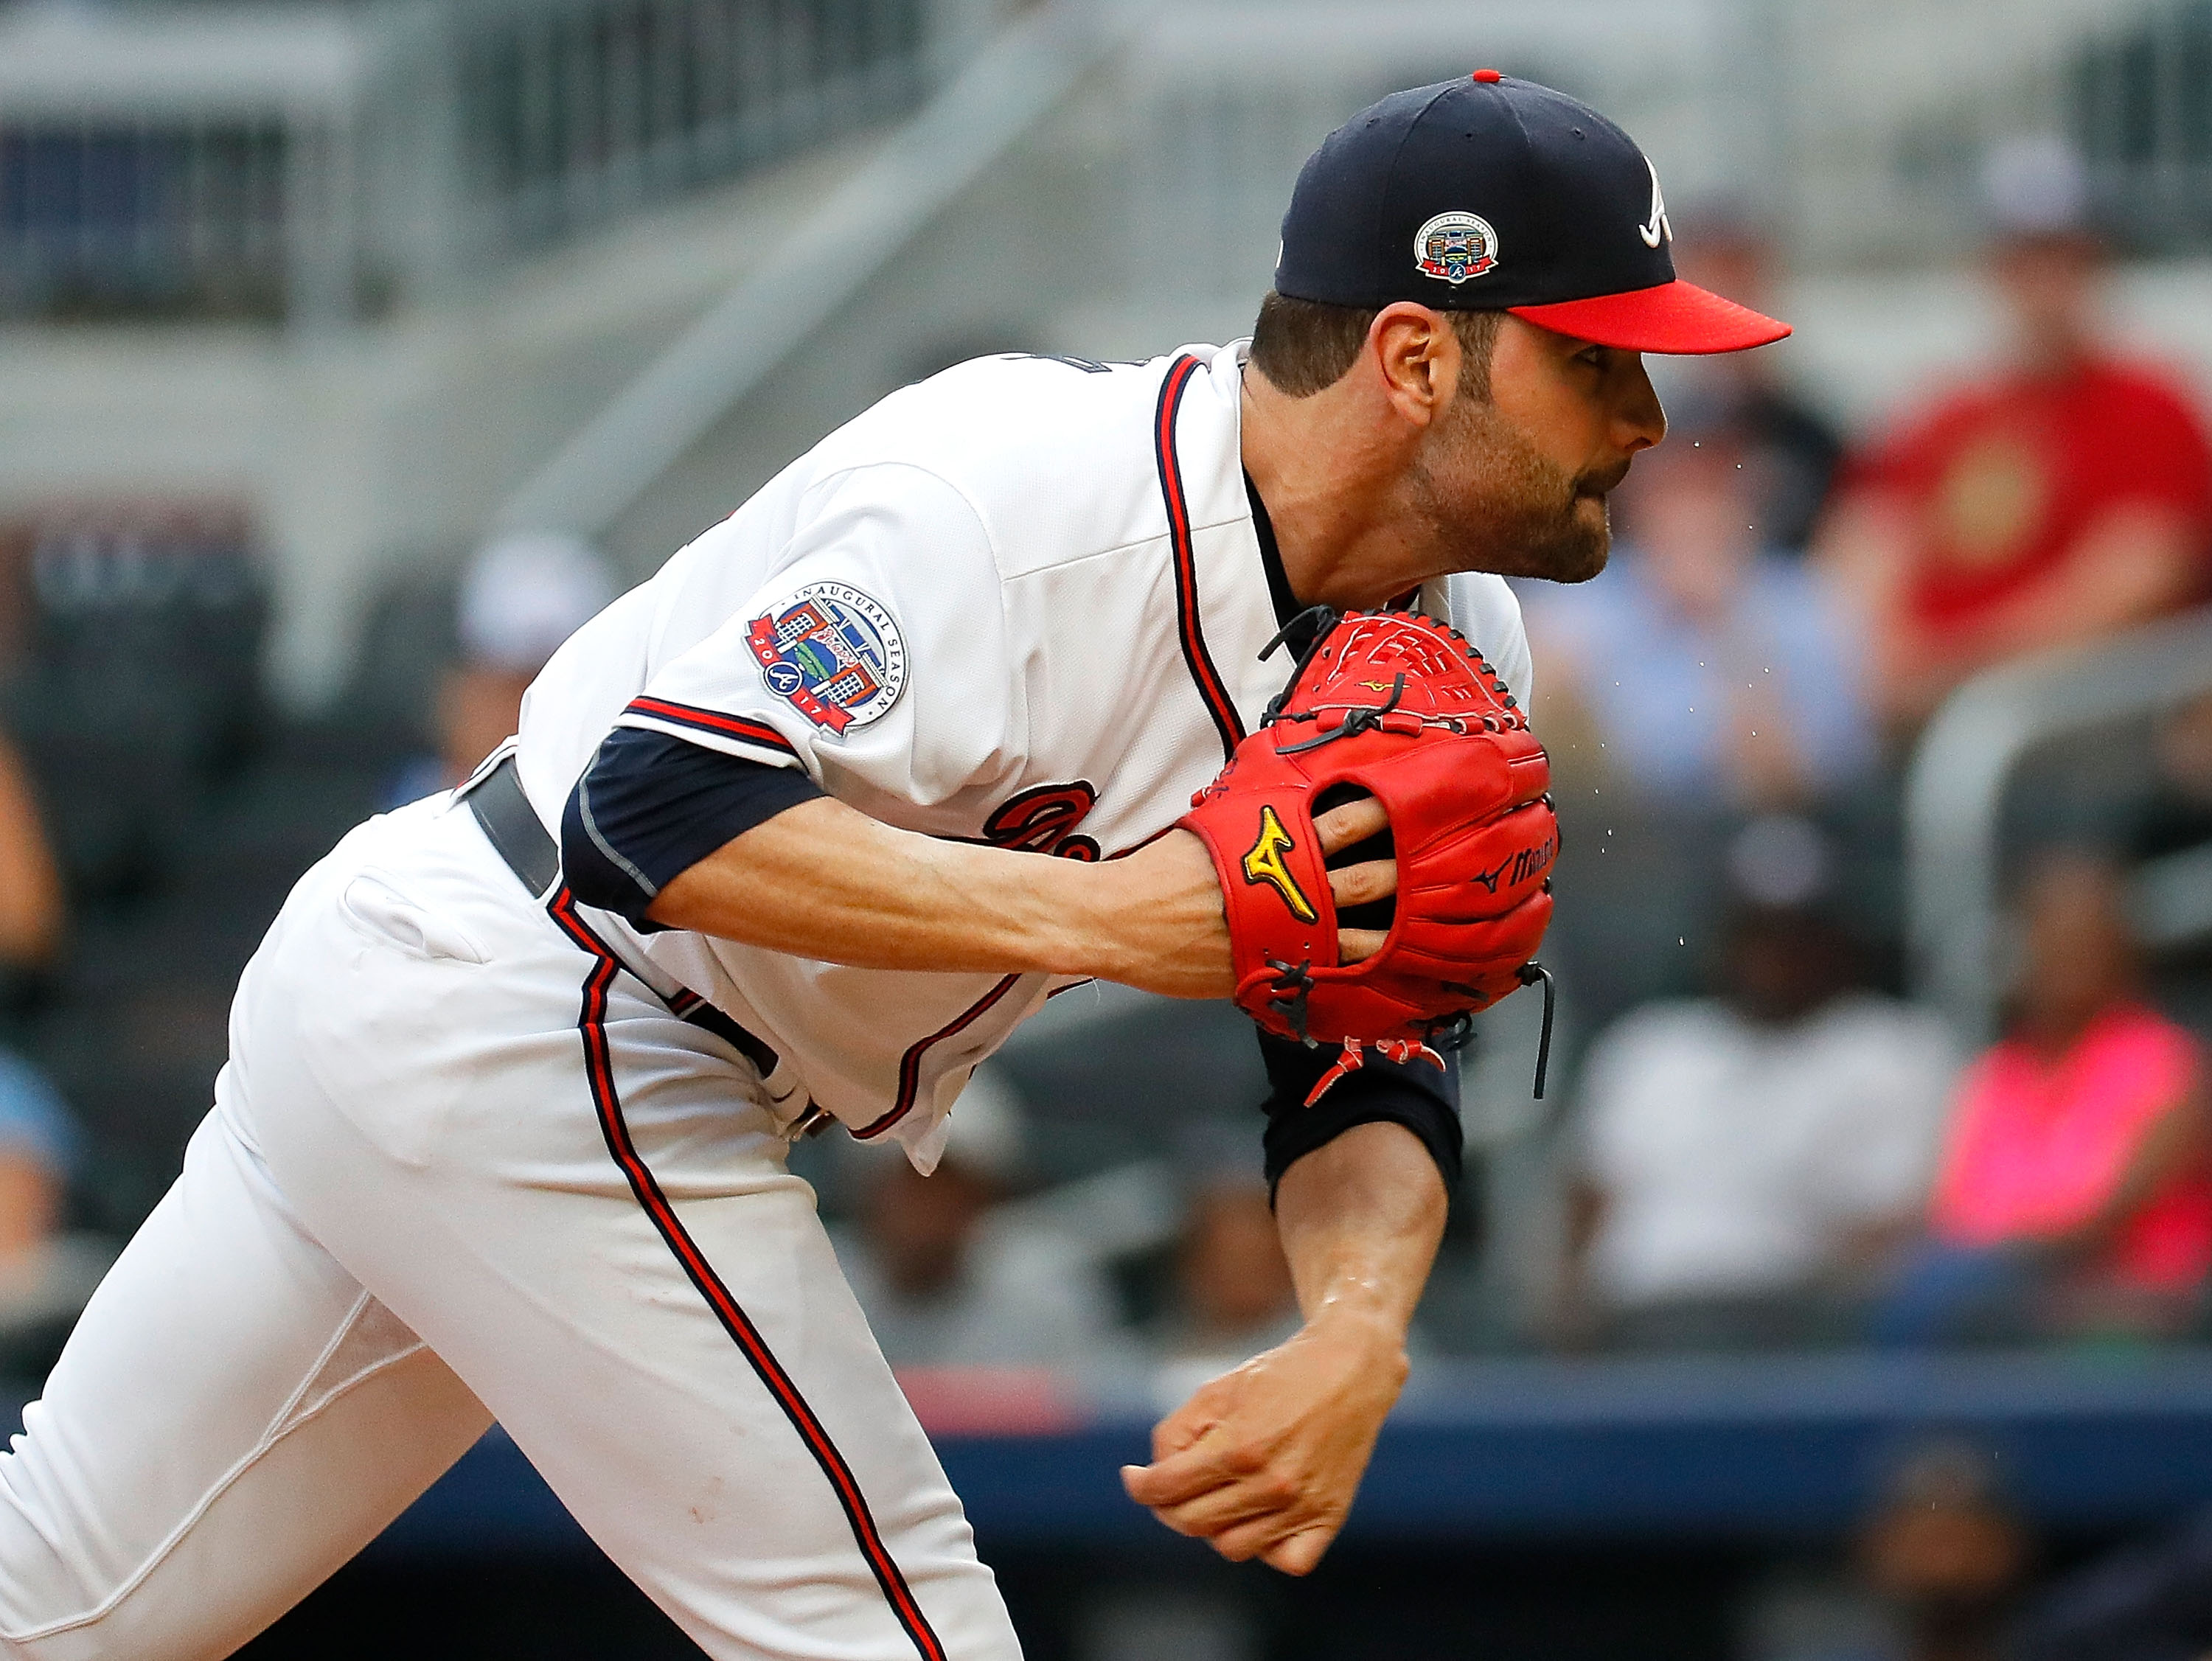 Minnesota Twins Close To Acquiring Jaime Garcia From Atlanta Braves